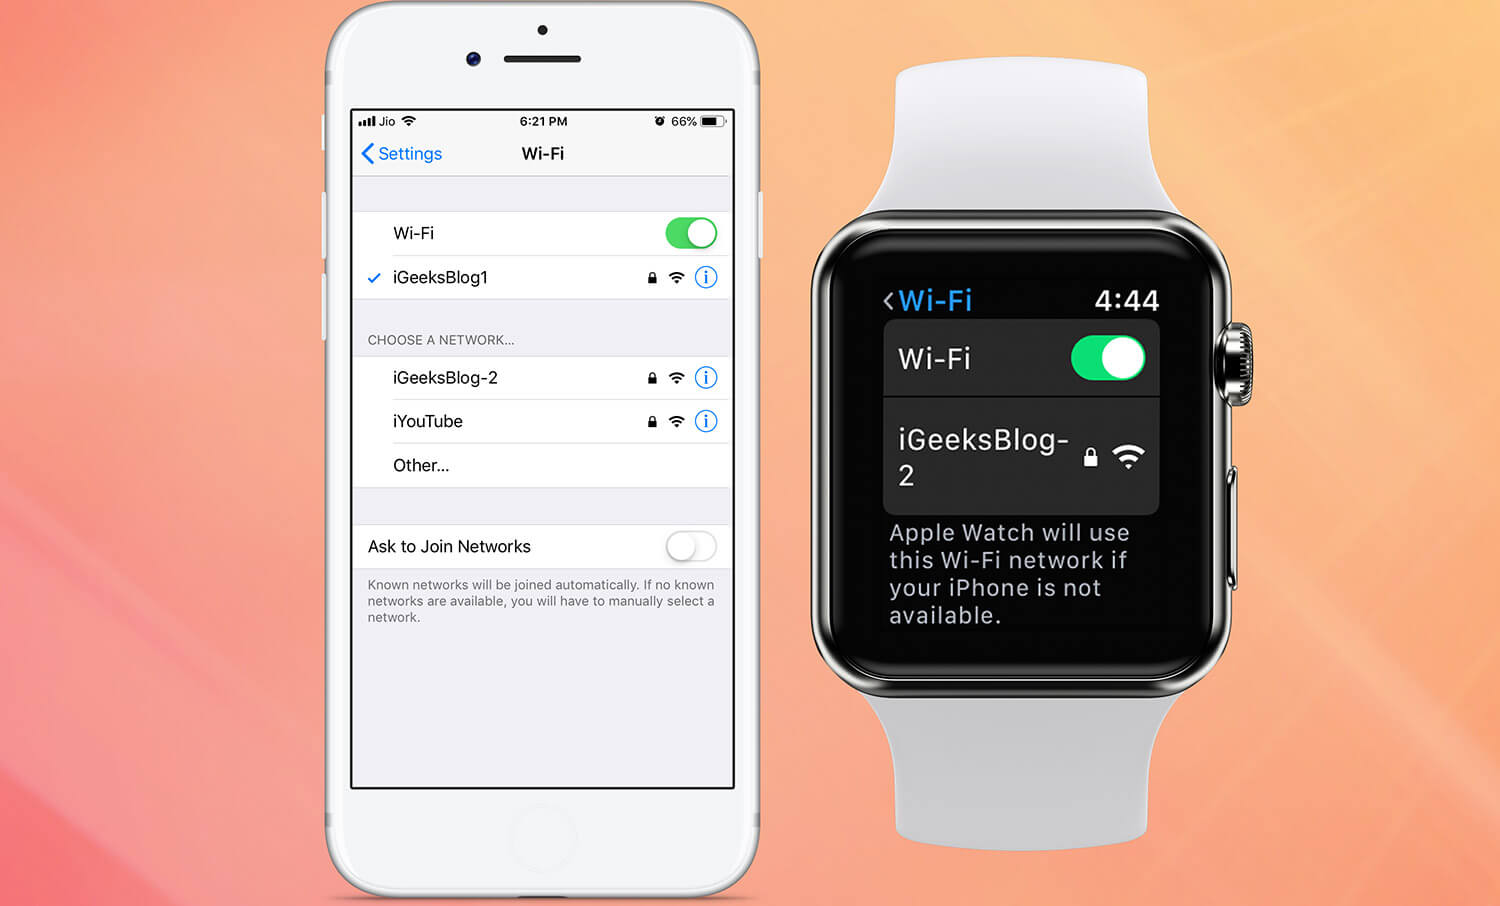 Apple Watch is connected to a public Wi-Fi network